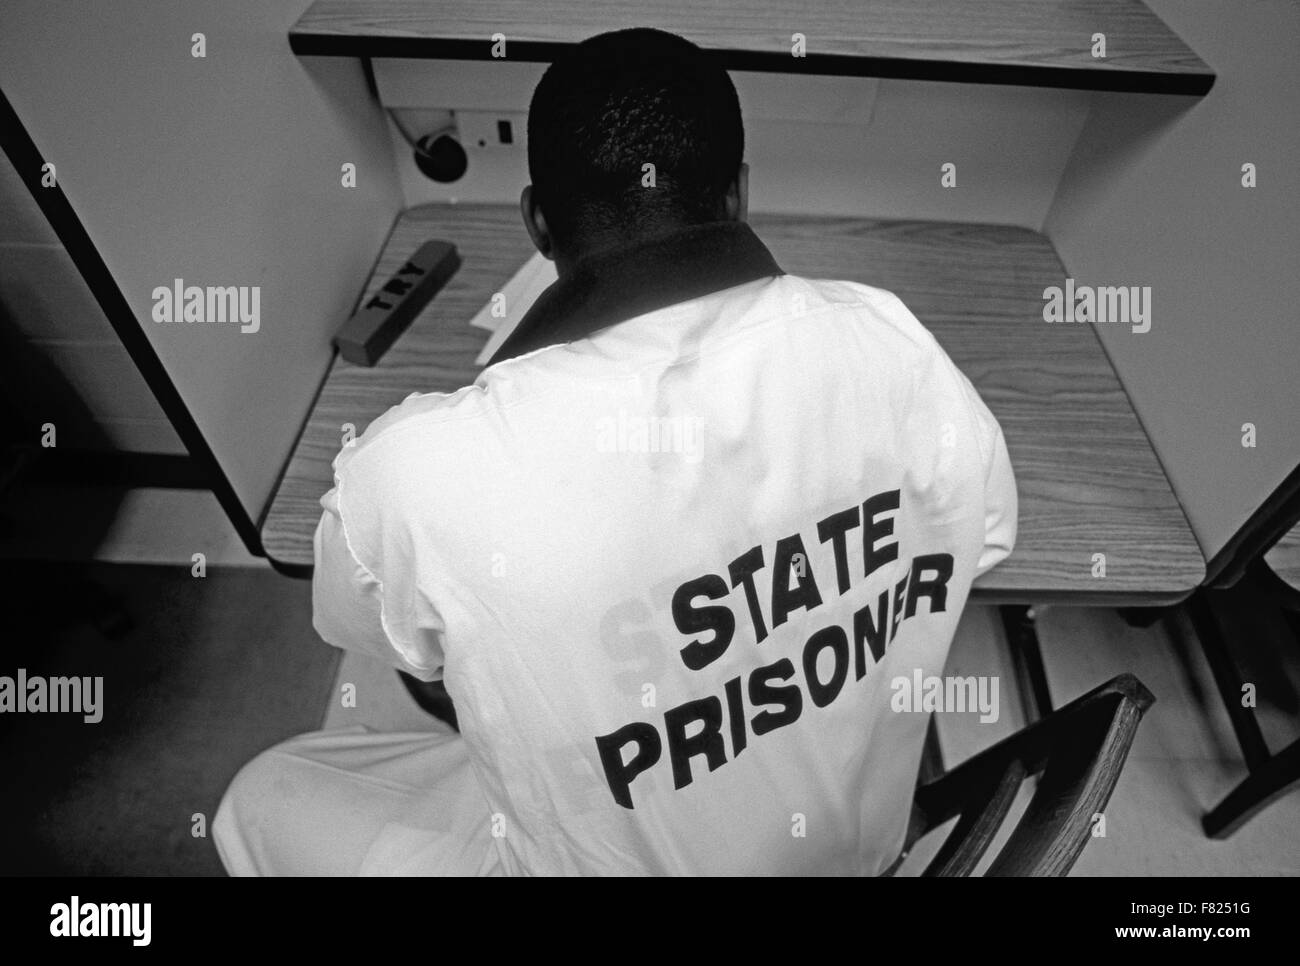 State Prisoners study English textbooks at a correctional facility in Georgia. - Stock Image